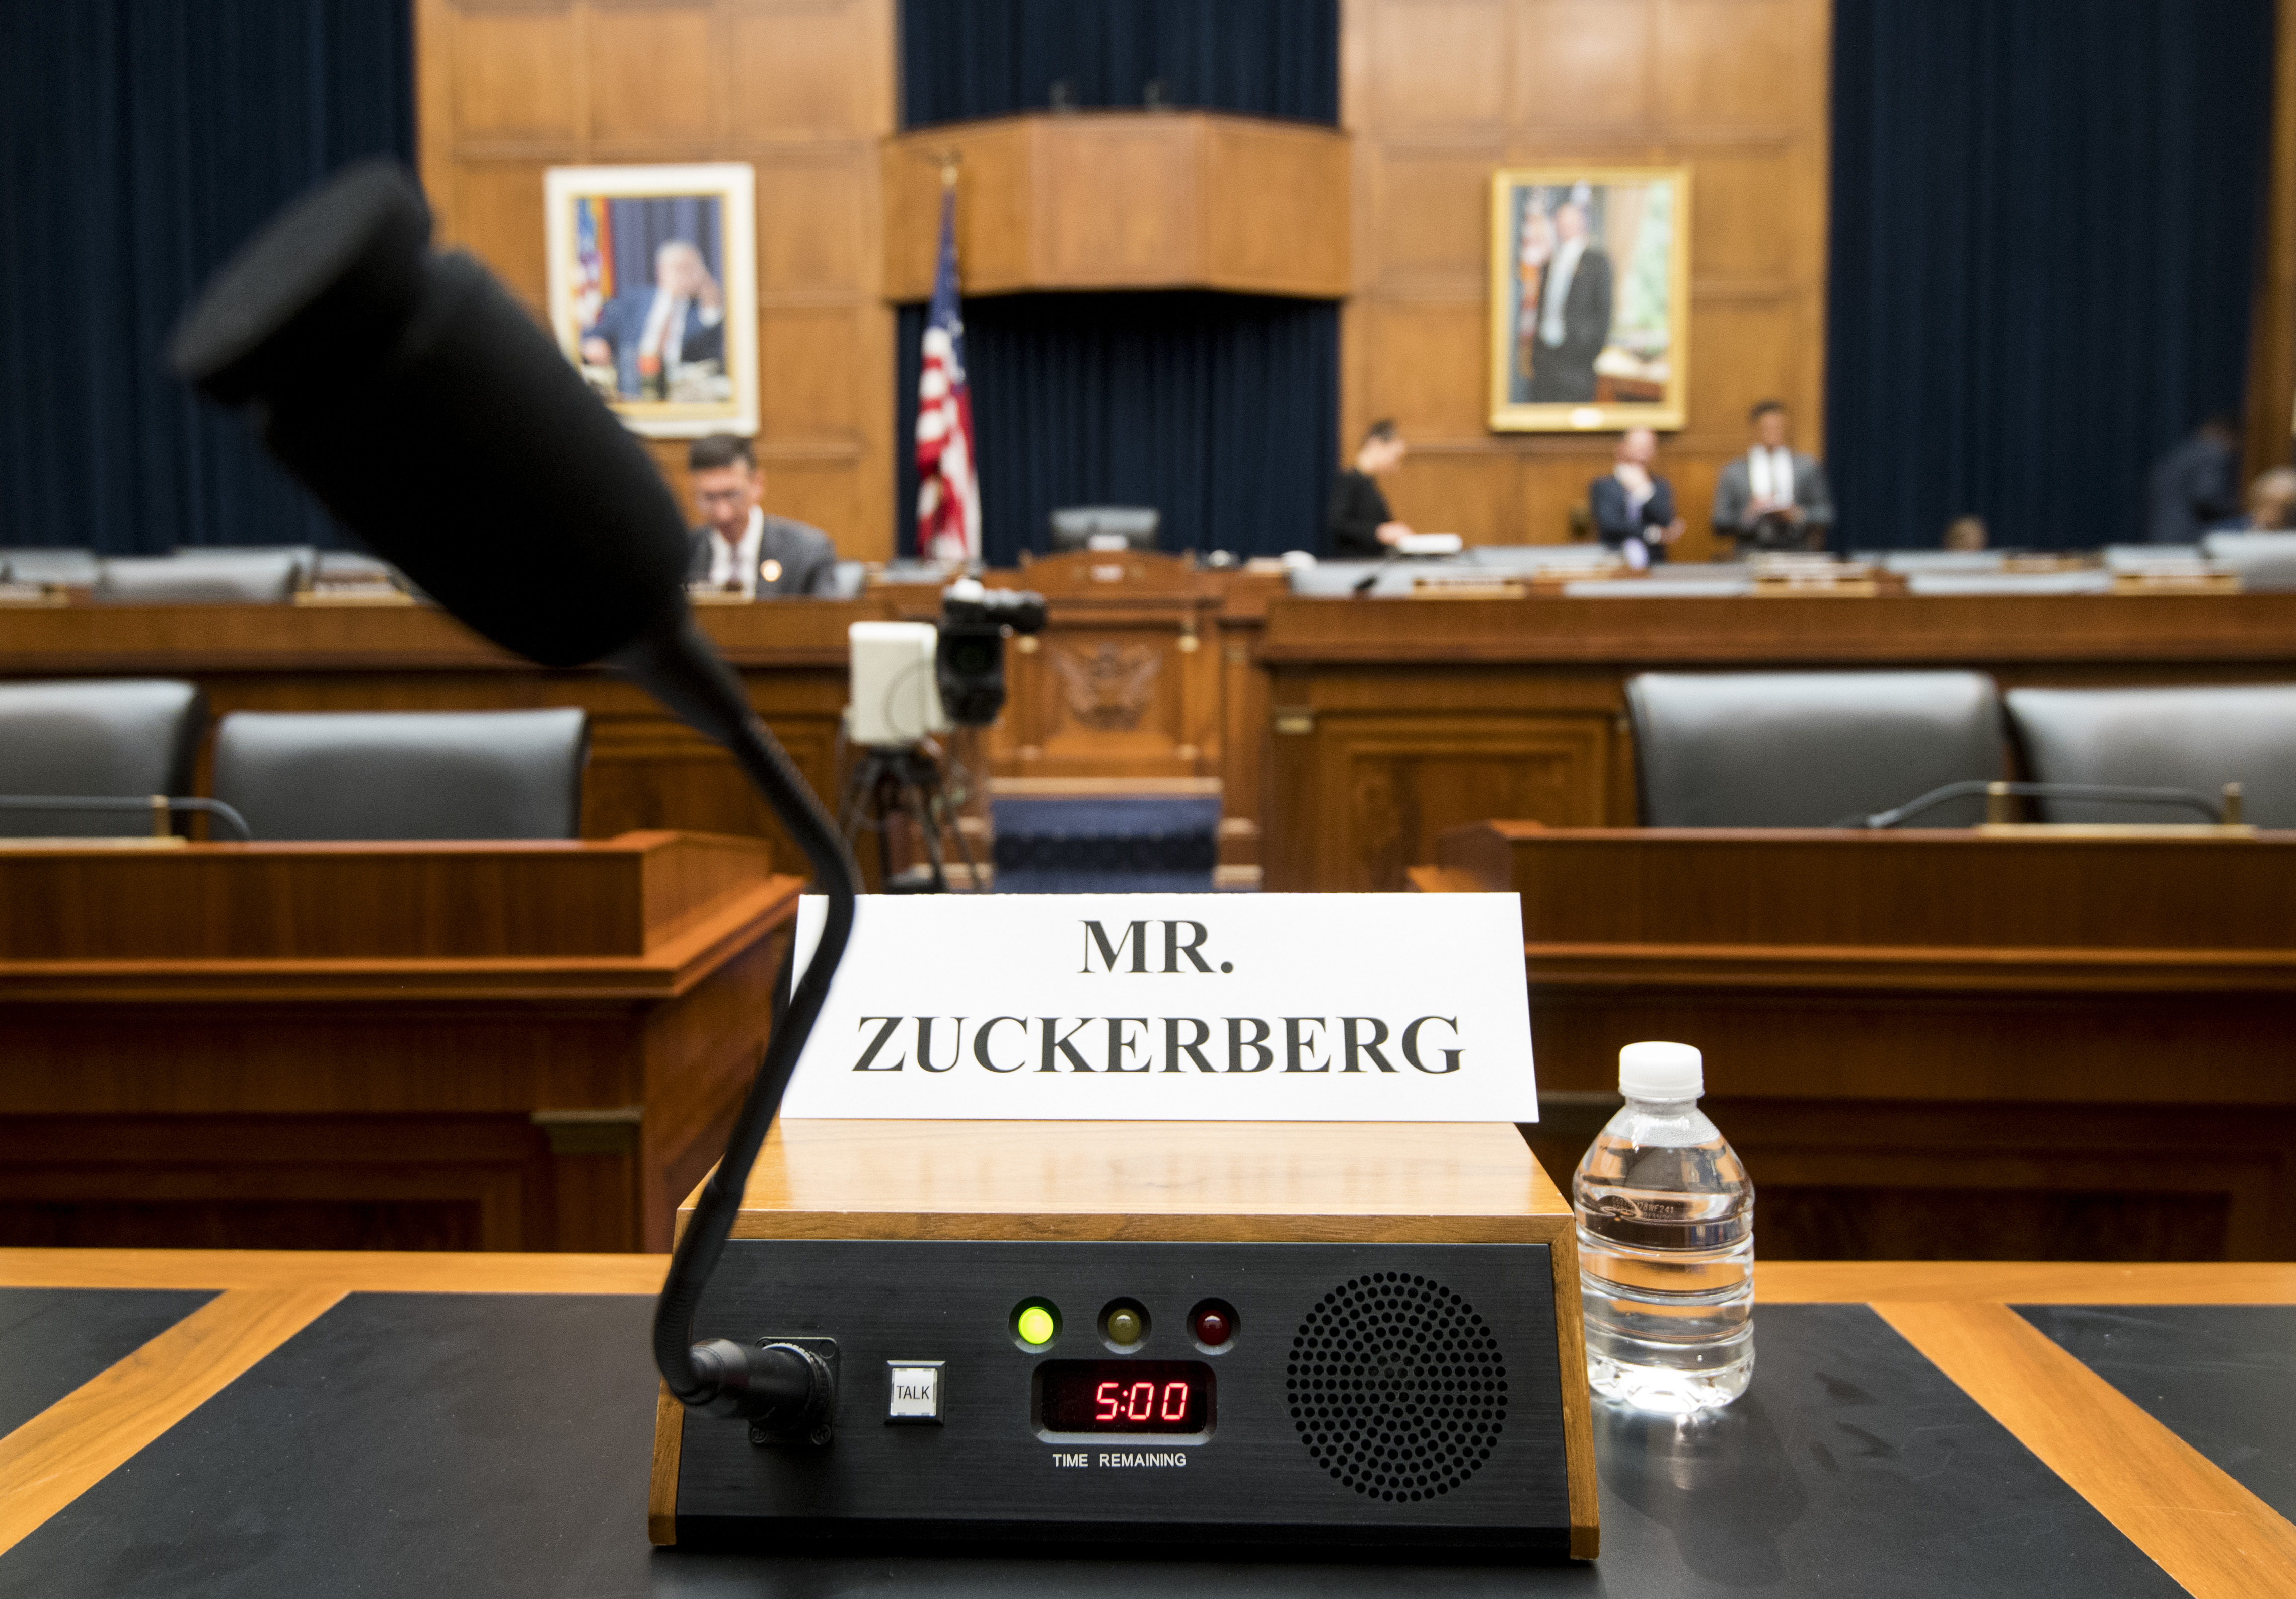 UNITED STATES - OCTOBER 23: The view Mark Zuckerberg, Chairman and Chief Executive Officer of Facebook, will have during the House Financial Services hearing on ÒAn Examination of Facebook and Its Impact on the Financial Services and Housing SectorsÓ on Wednesday, Oct. 23, 2019. (Photo By Bill Clark/CQ Roll Call)